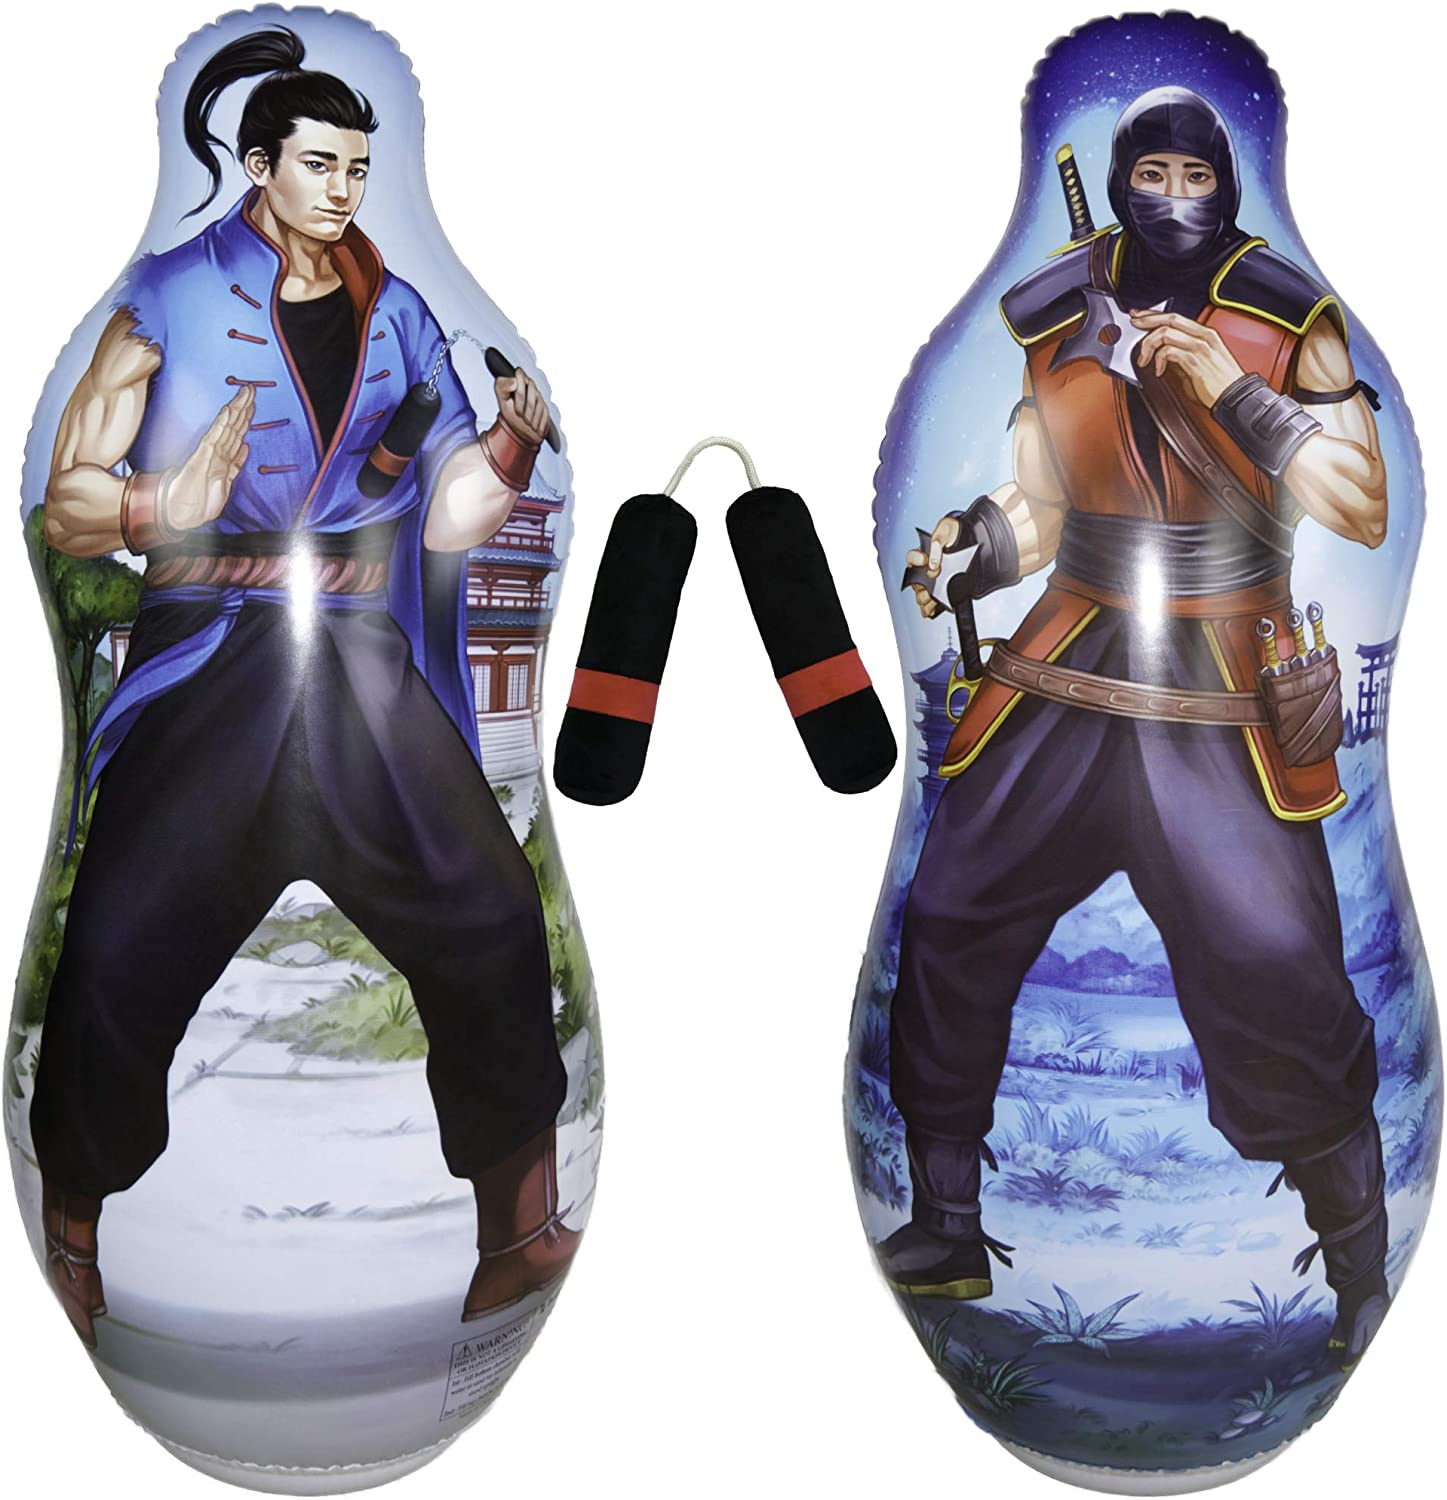 "Inflatable Two Sided Punching Bag & Plush Nun-chuck Set | Includes one 48"" Tall Bop Bag (Ninja Illustration on Front and Kung Fu Master on Back) Plus One Soft Nun-chuck 